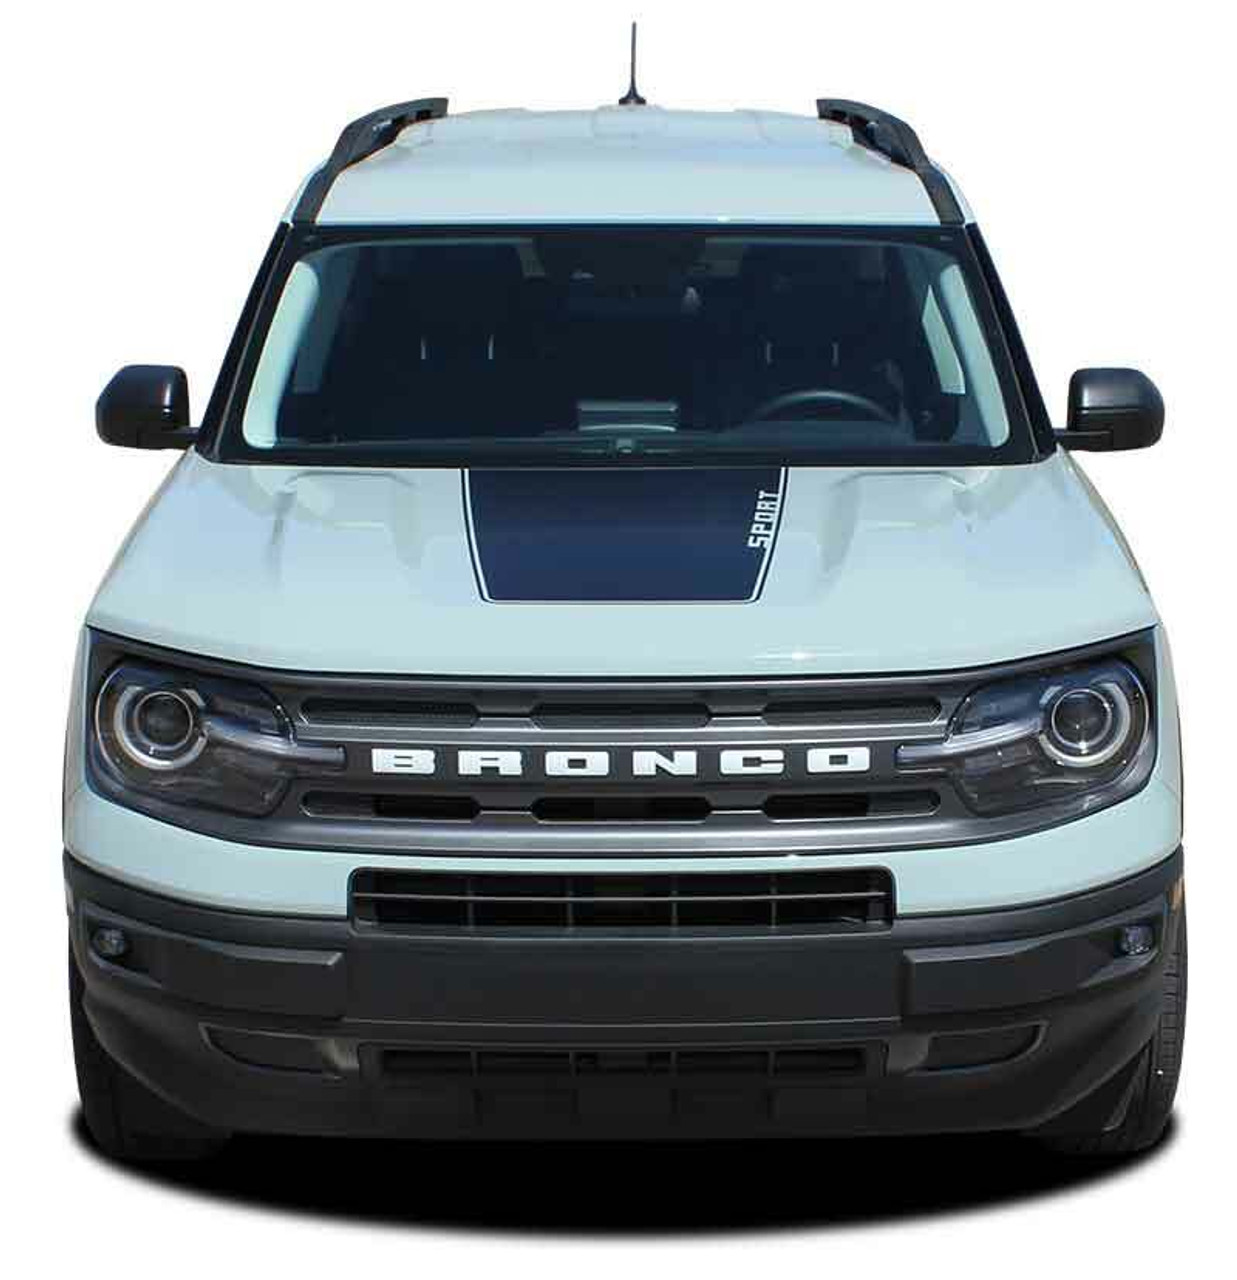 Ford Bronco   2021-2022